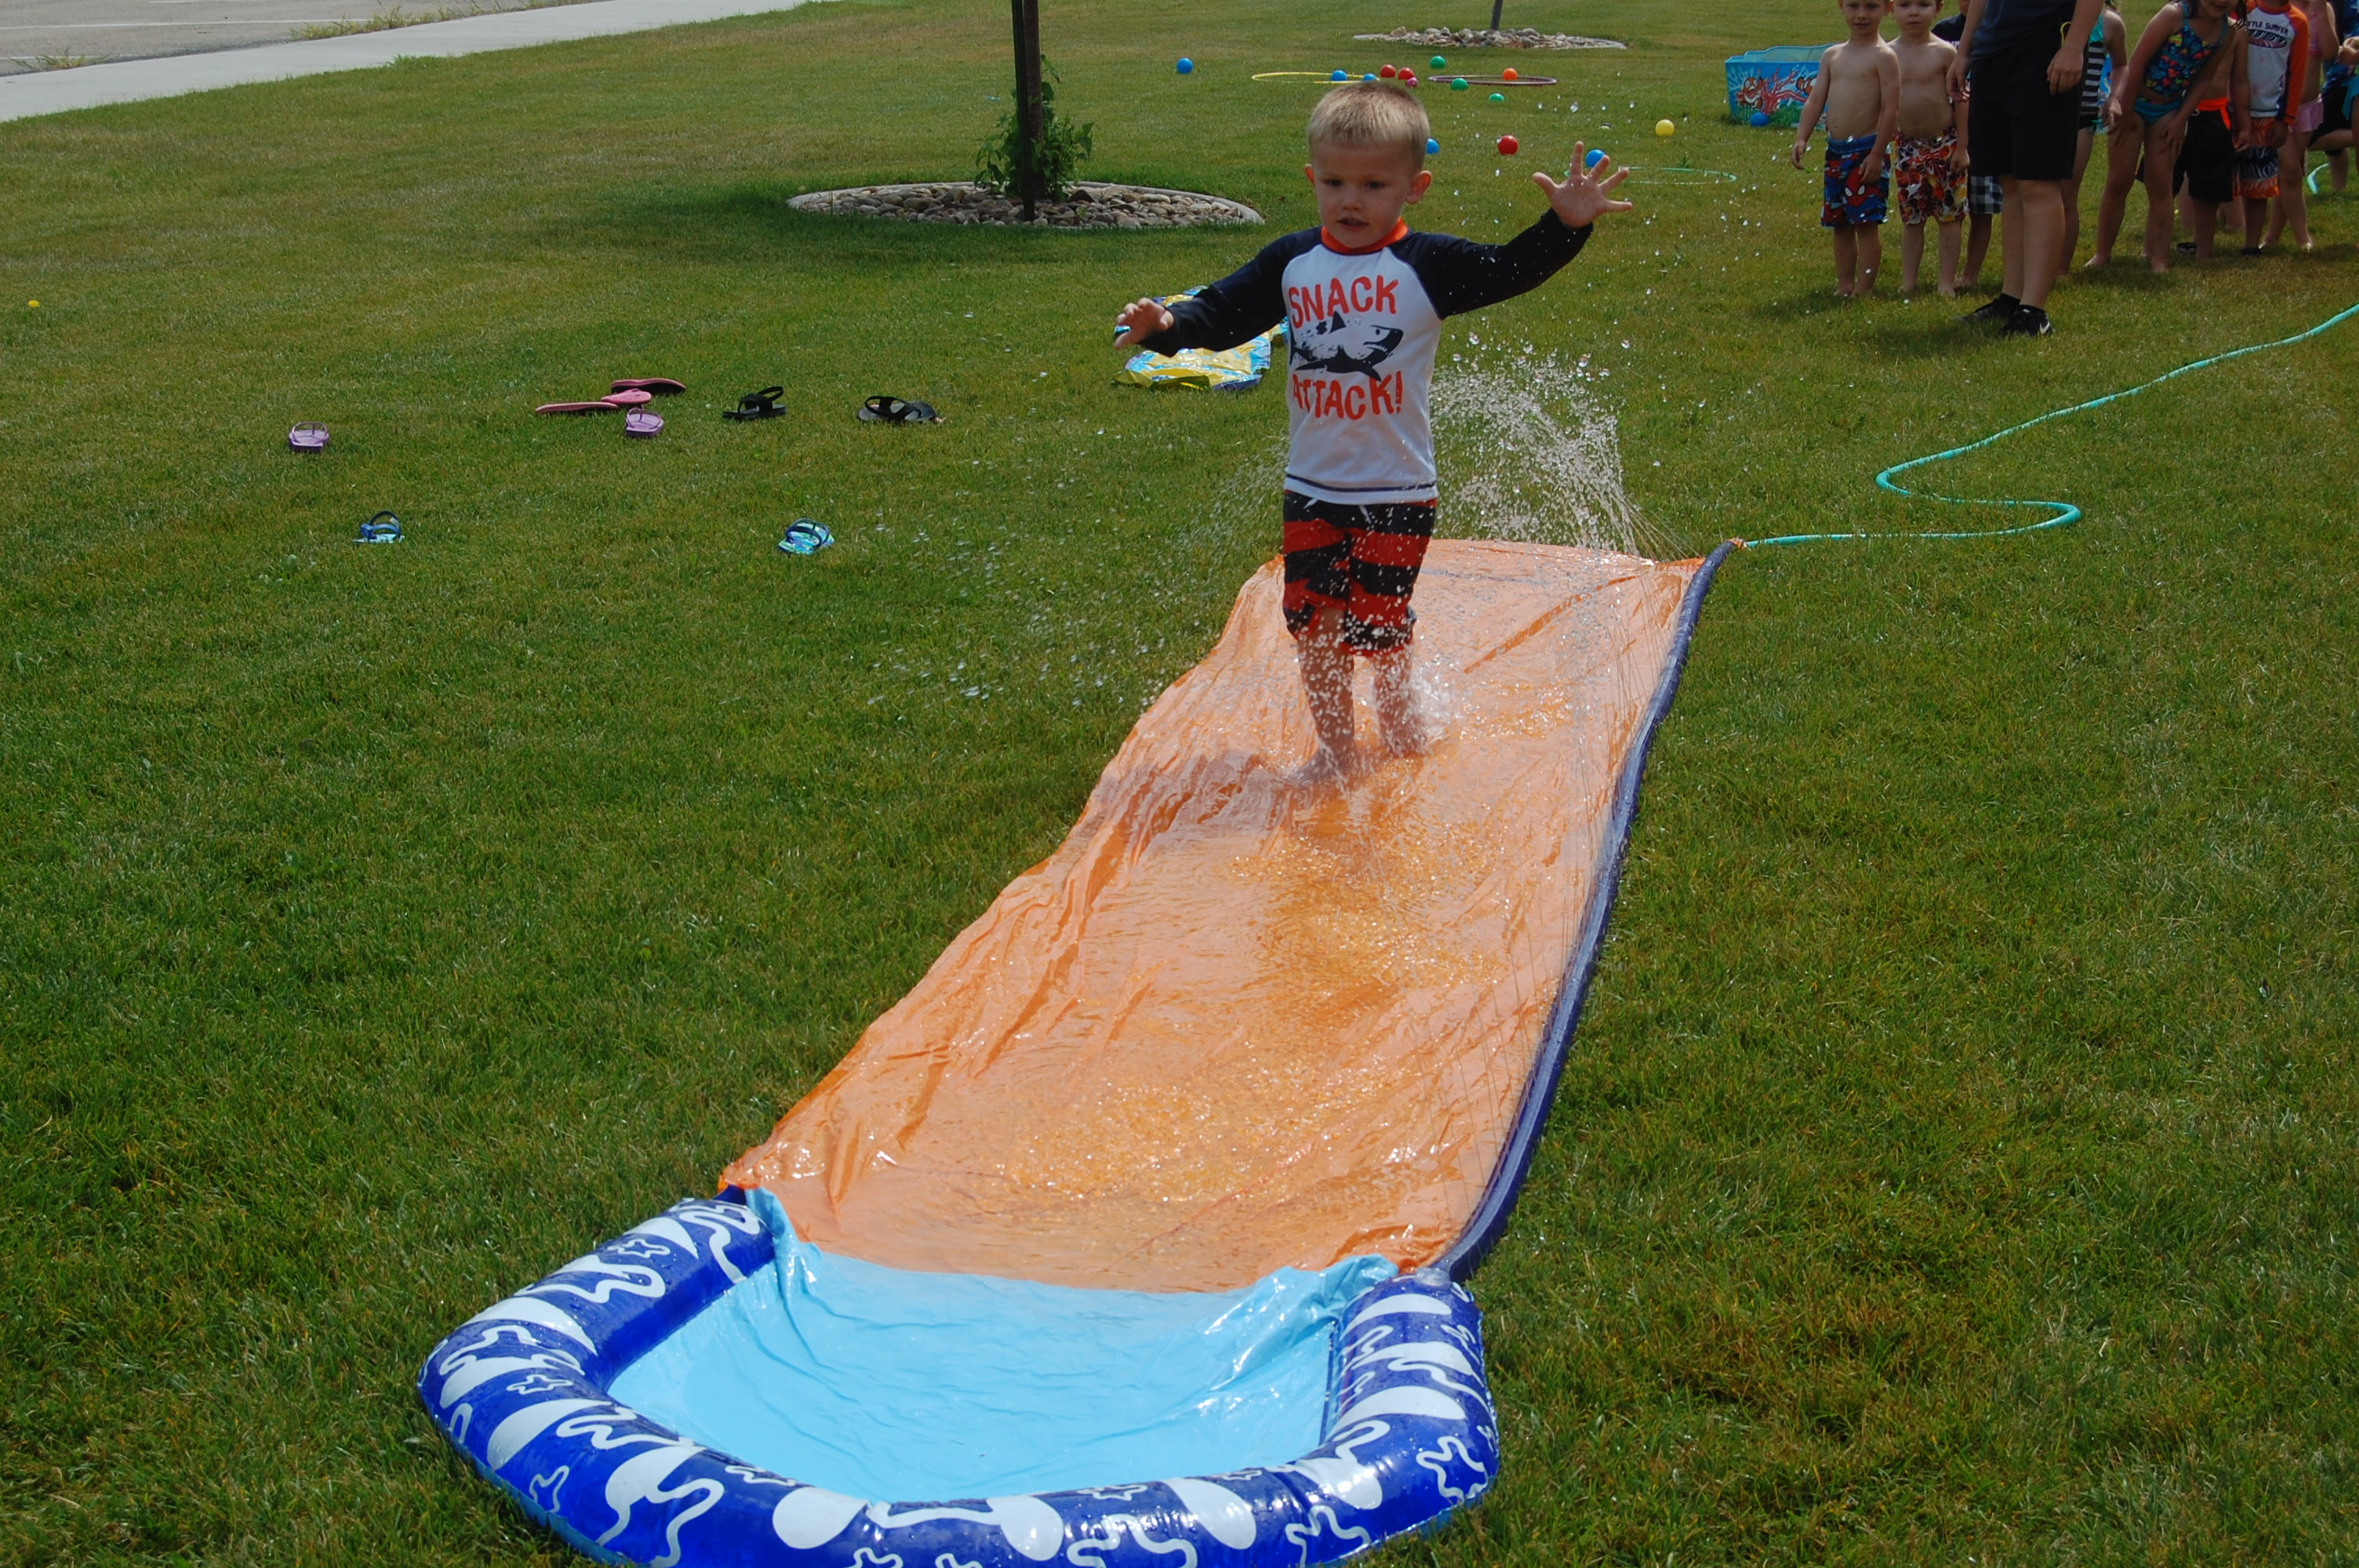 Corbin on the slip n slide